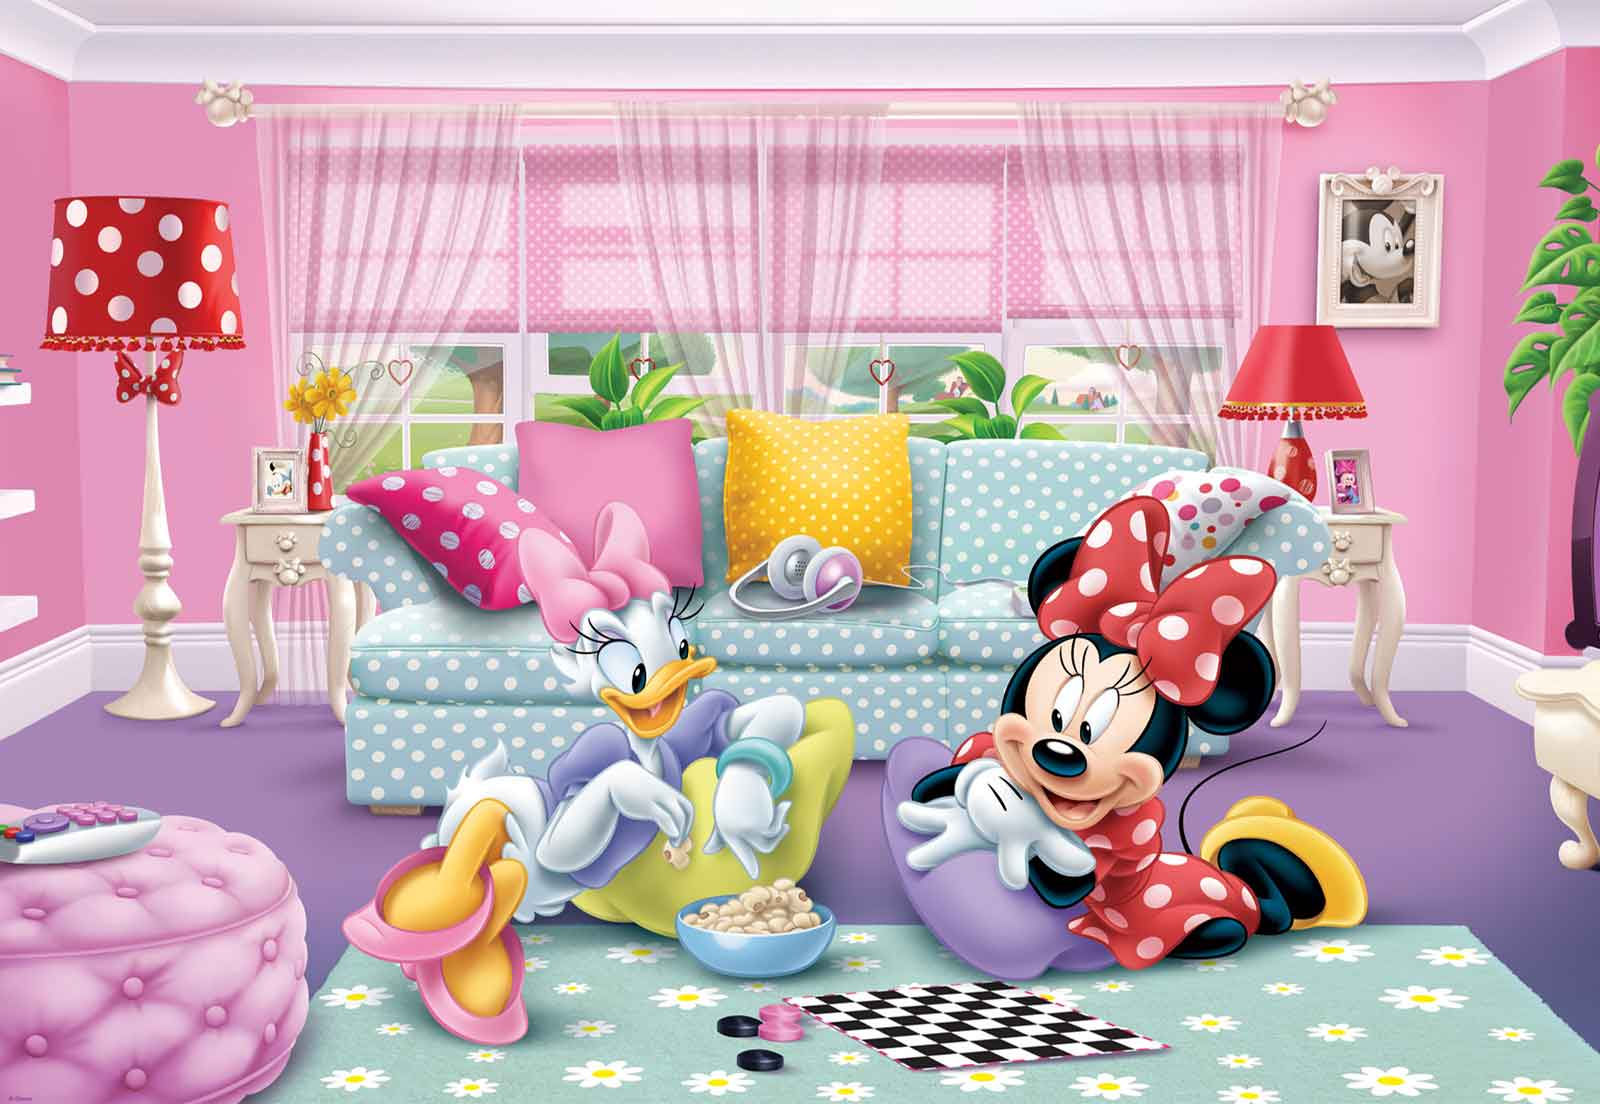 Minnie mouse disney wall mural photo wallpaper mi wm ebay for Cn mural designs